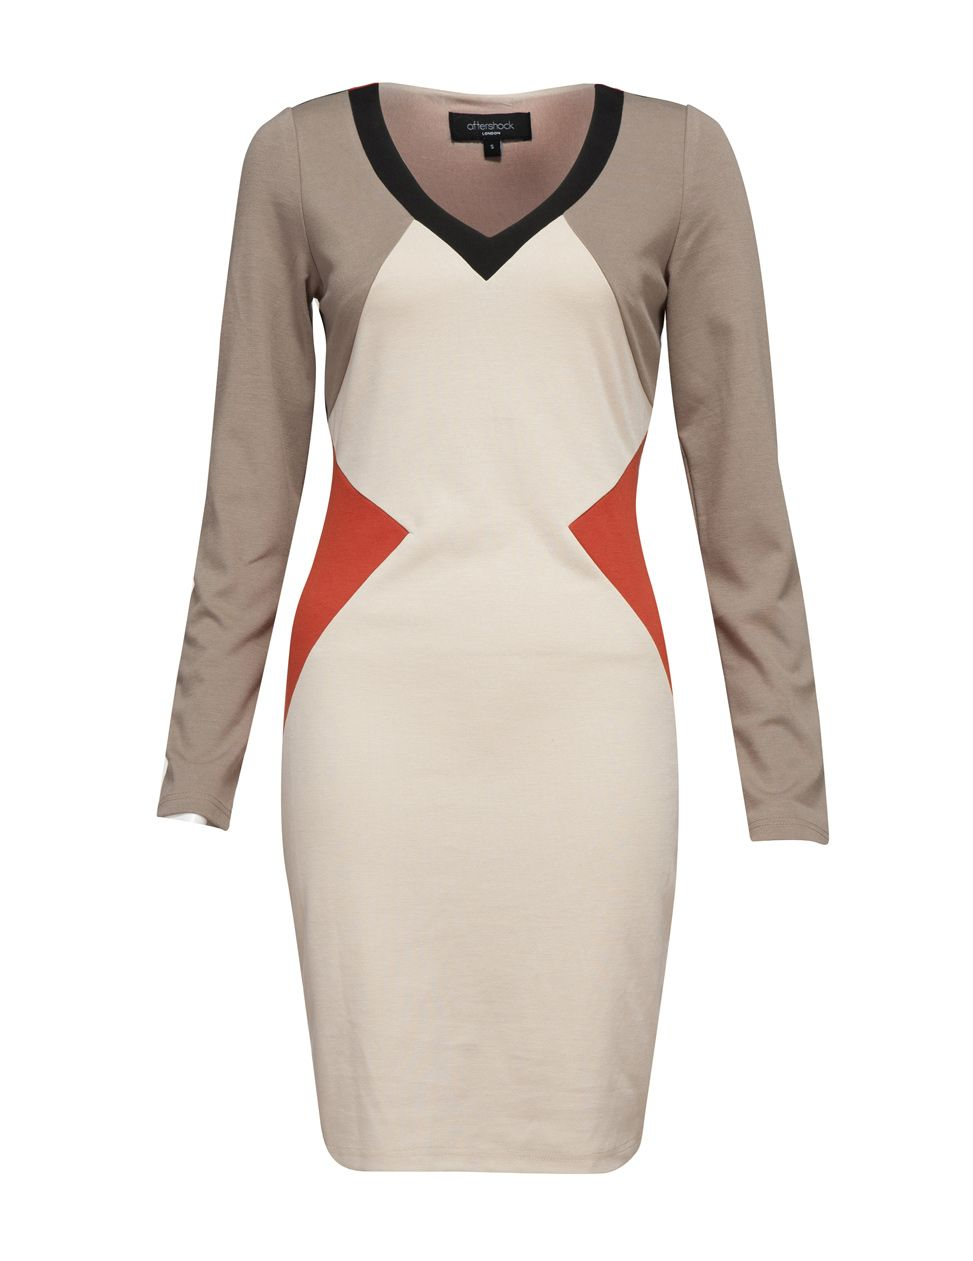 Titana colour block bodycon dress